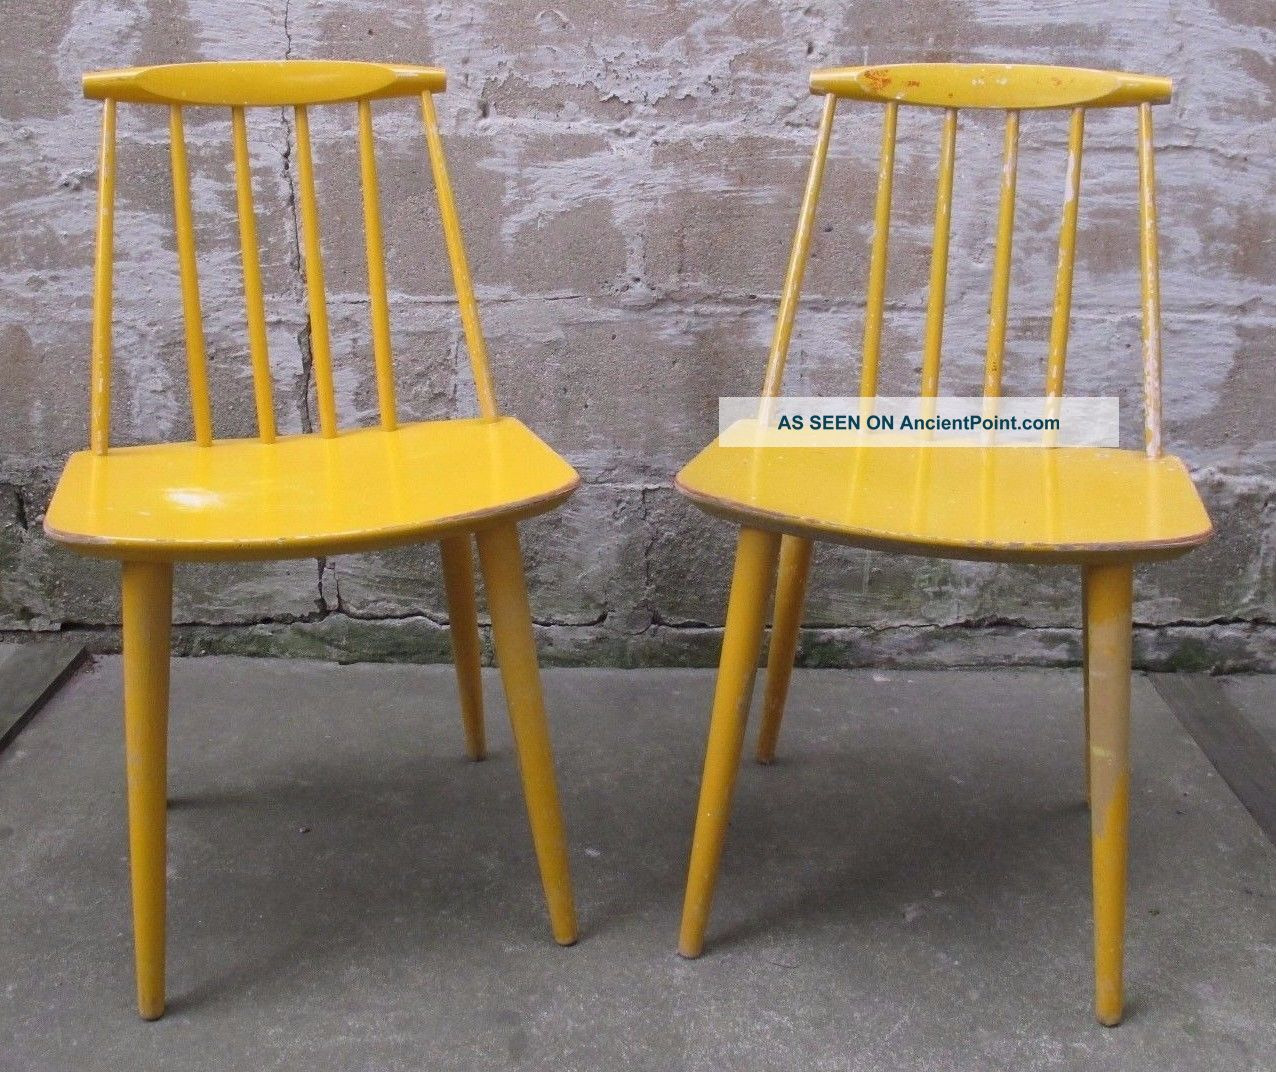 Pair Folke Palsson Danish Modern Spindle Back Side Chairs Dining Mid Century J77 Post-1950 photo